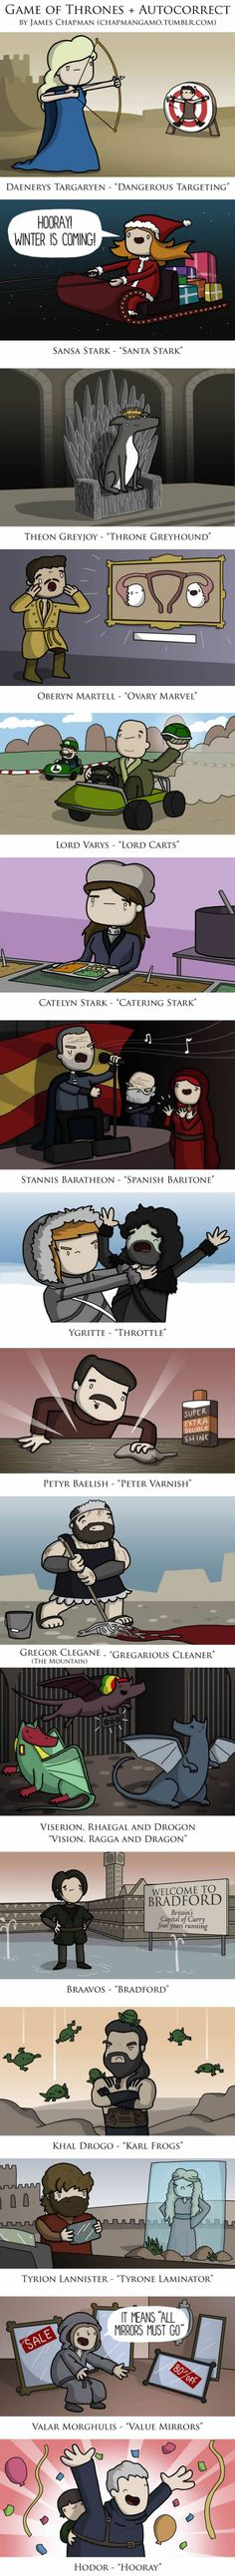 Game of Thrones + Autocorrect (By James Chapman)